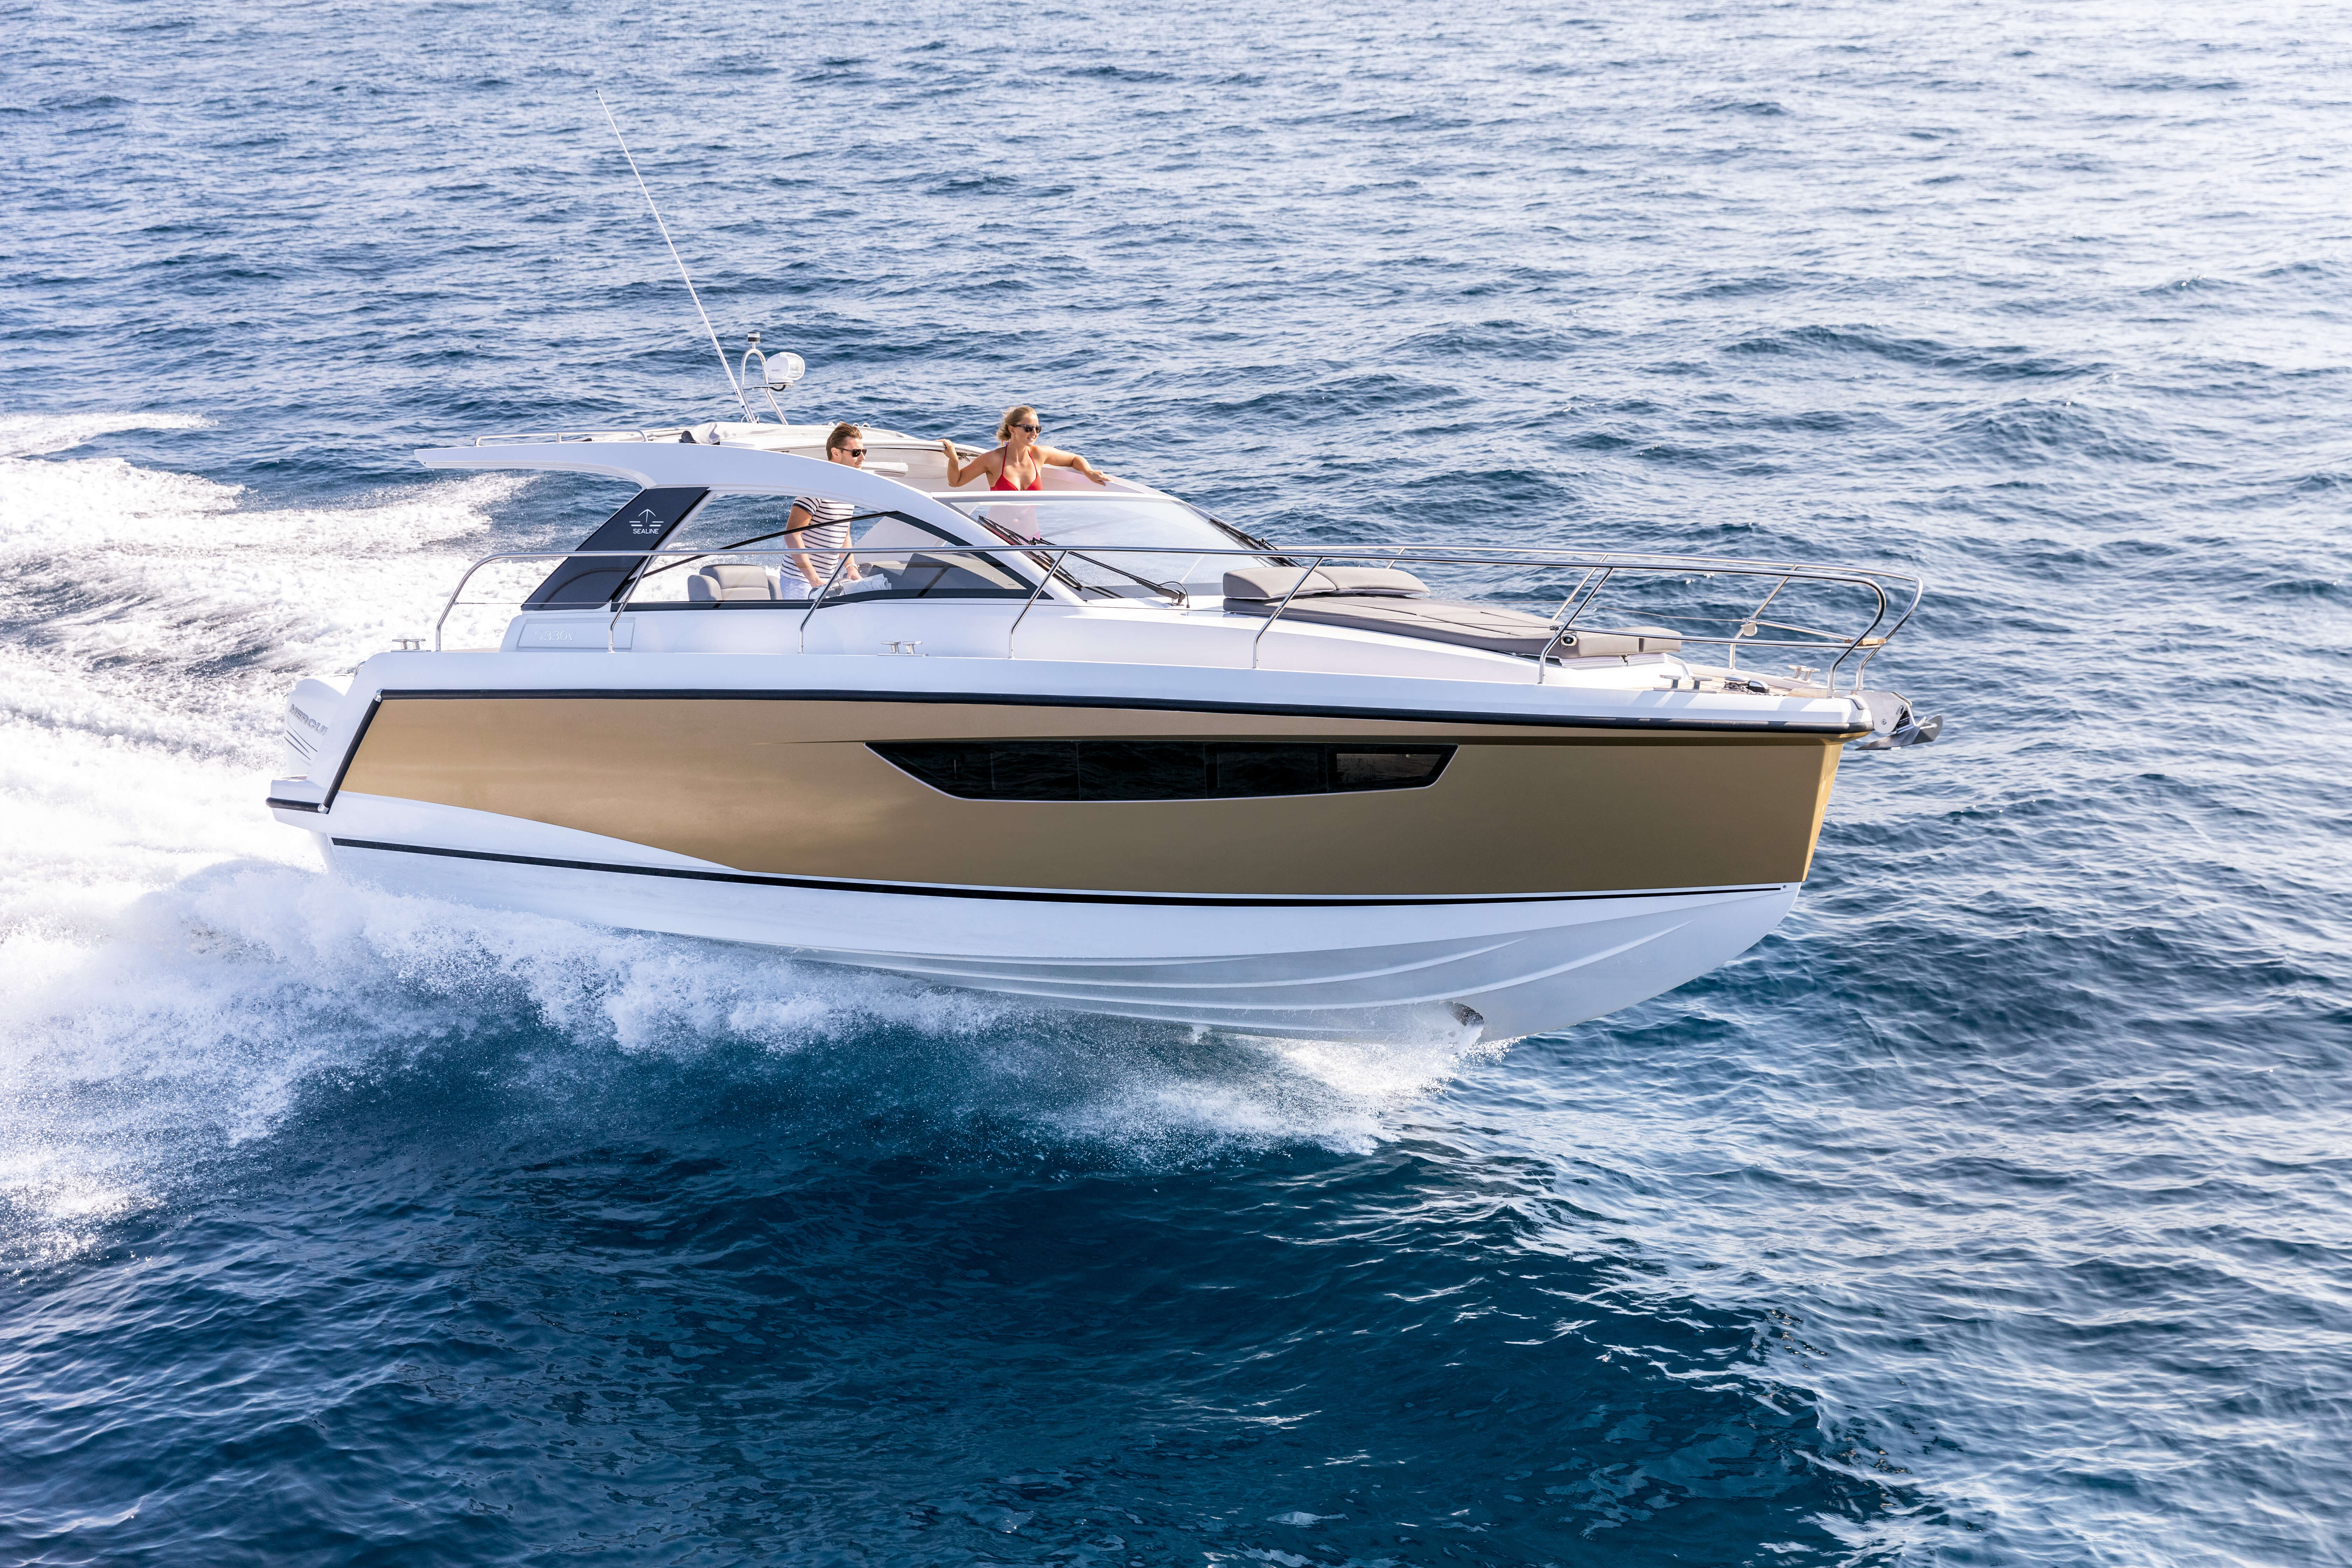 Sealine S330v exterior | The breathtaking performance is delivered by two powerful outboard engines just waiting to get going. | Sealine